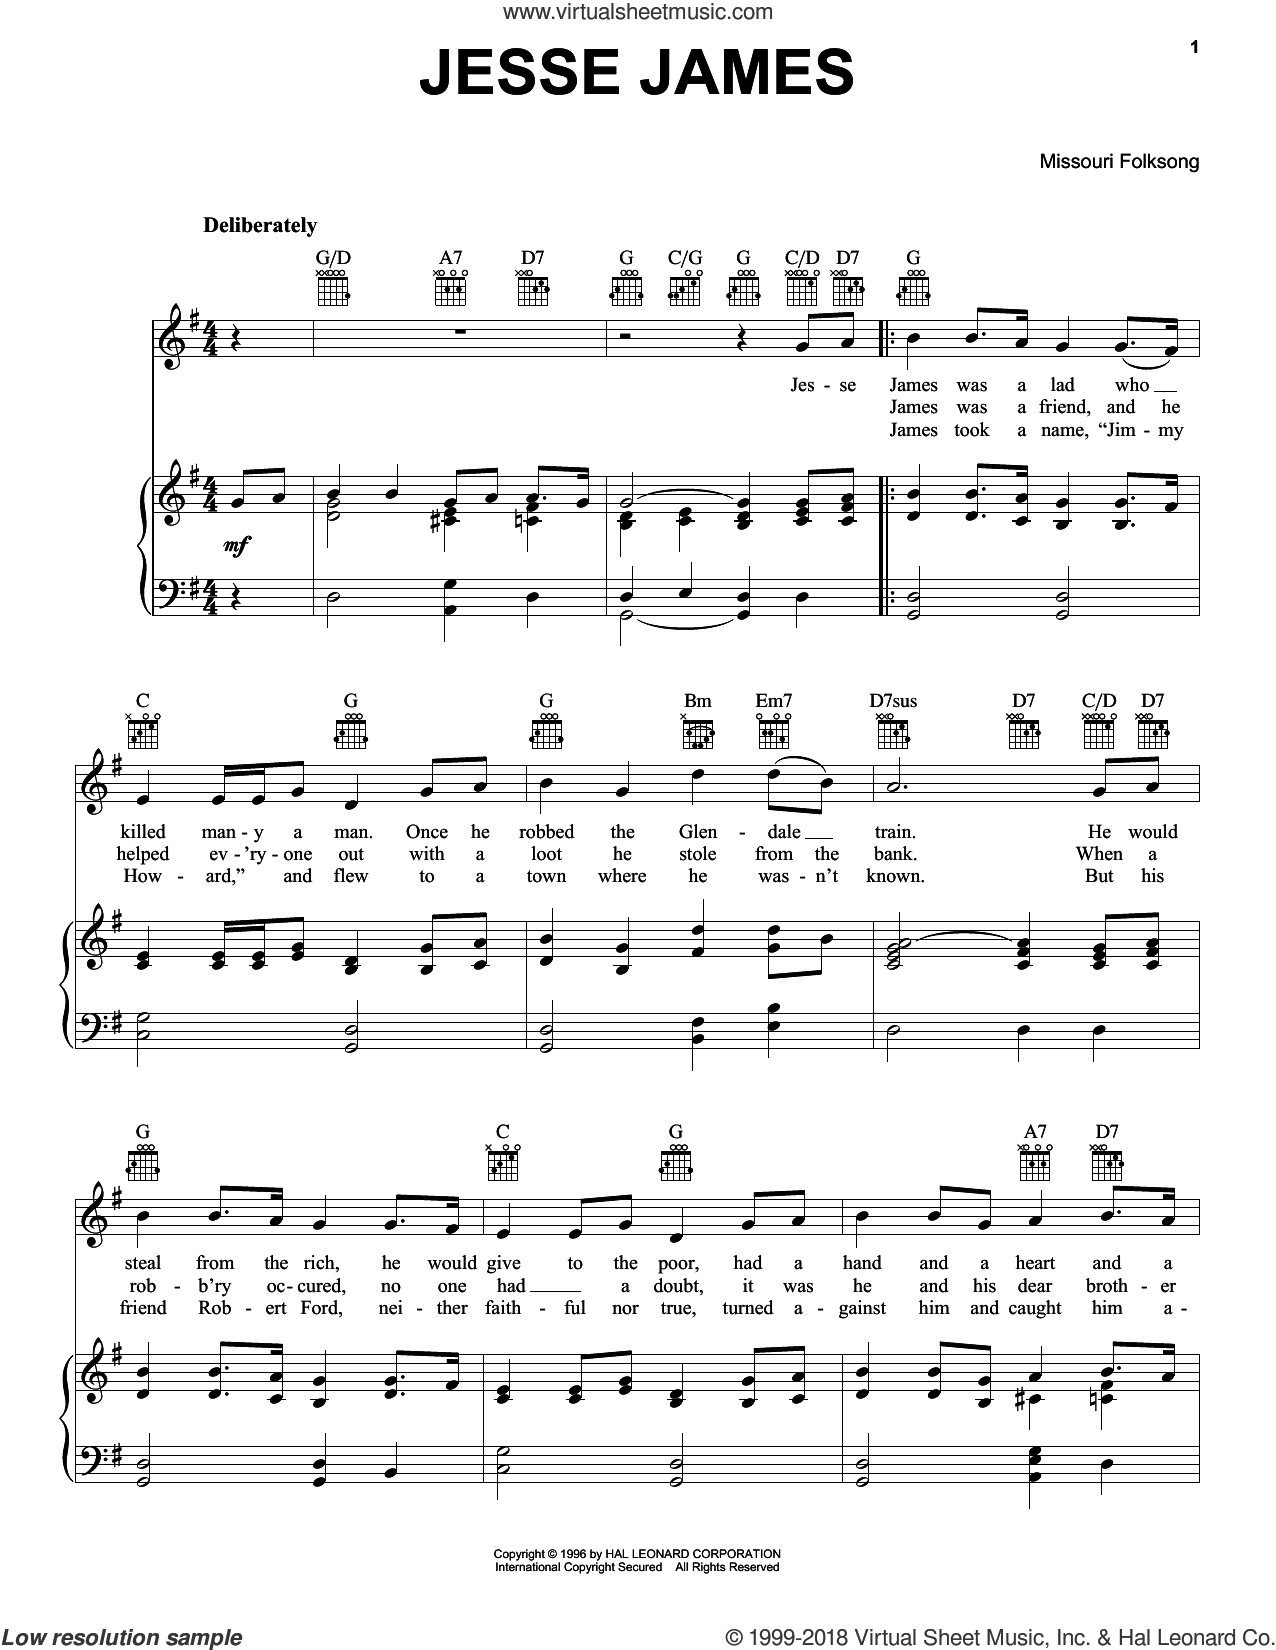 Jesse James sheet music for voice, piano or guitar by Missouri Folksong and Miscellaneous. Score Image Preview.